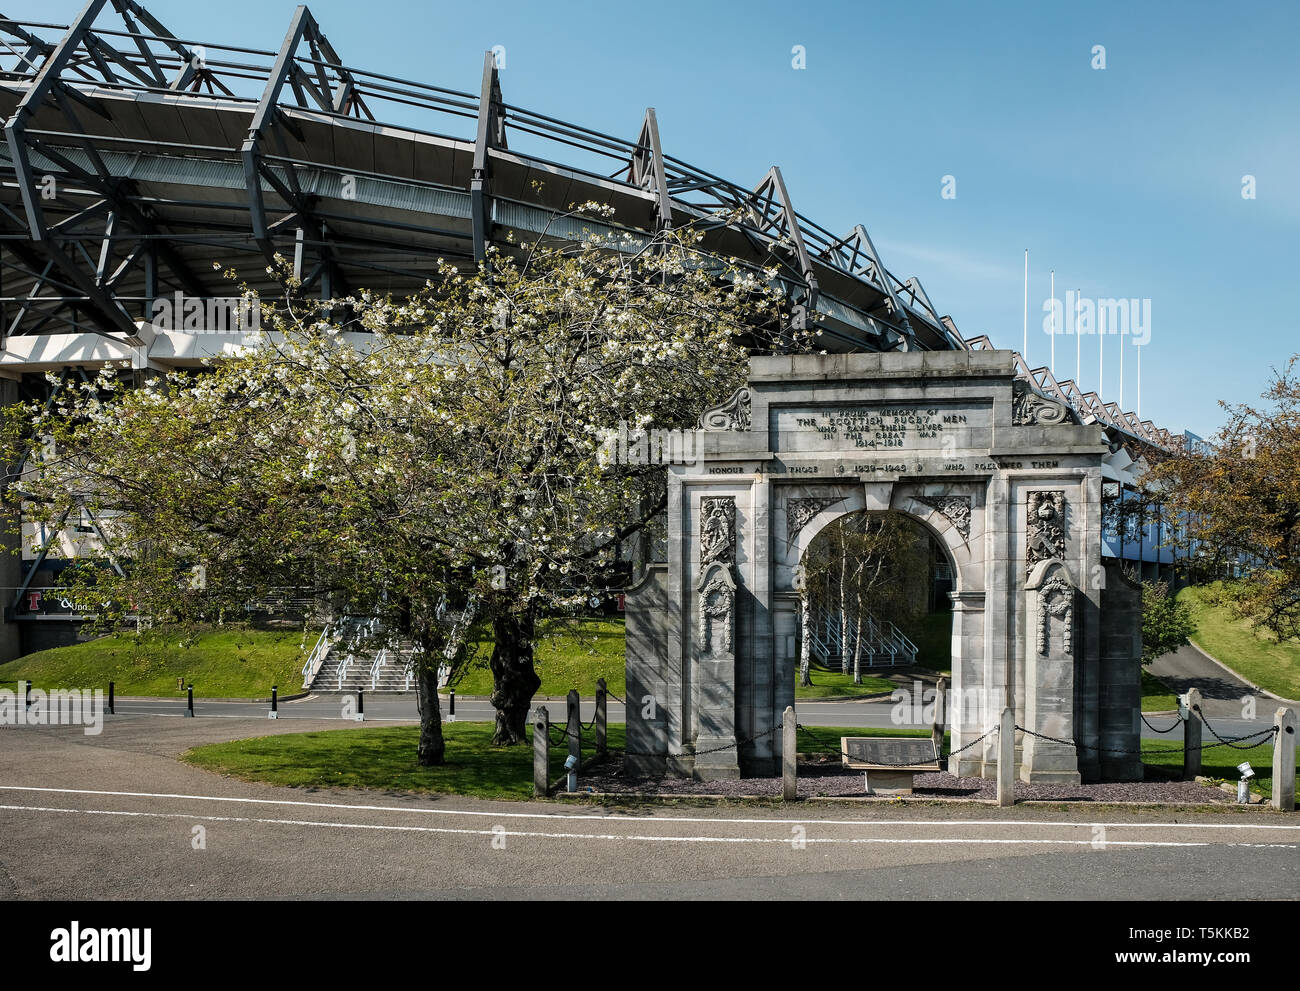 Exterior view of the ground memorial and south east side of Murrayfield rugby football stadium in Edinburgh on a sunny day, East Lothian, Scotland - Stock Image